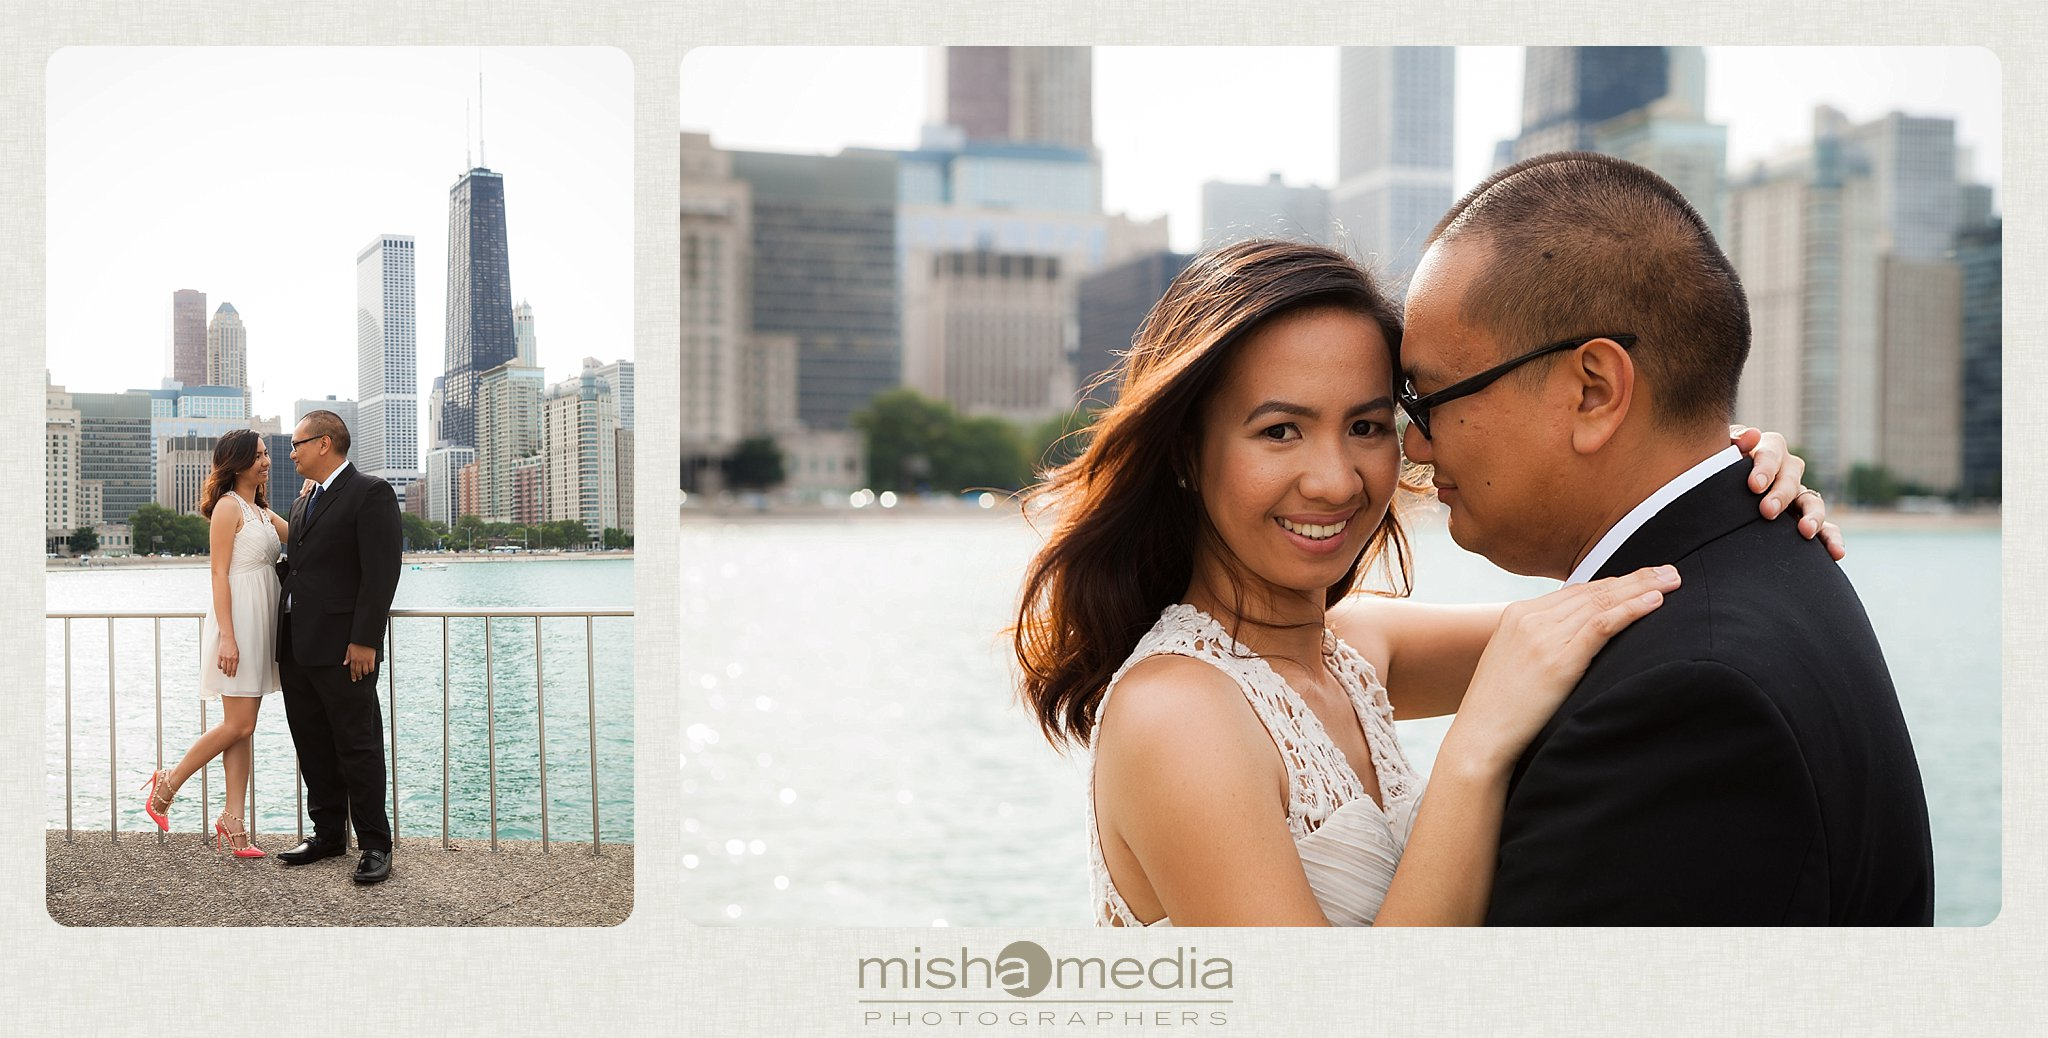 (C) Misha Media 2015 http://mishamedia.com All rights reserved. Please contact Misha Media for permission to use this image. Client may use this image for personal use only. Any questions? Please contact Misha Media emailme@mishamedia.com 630.935.7435